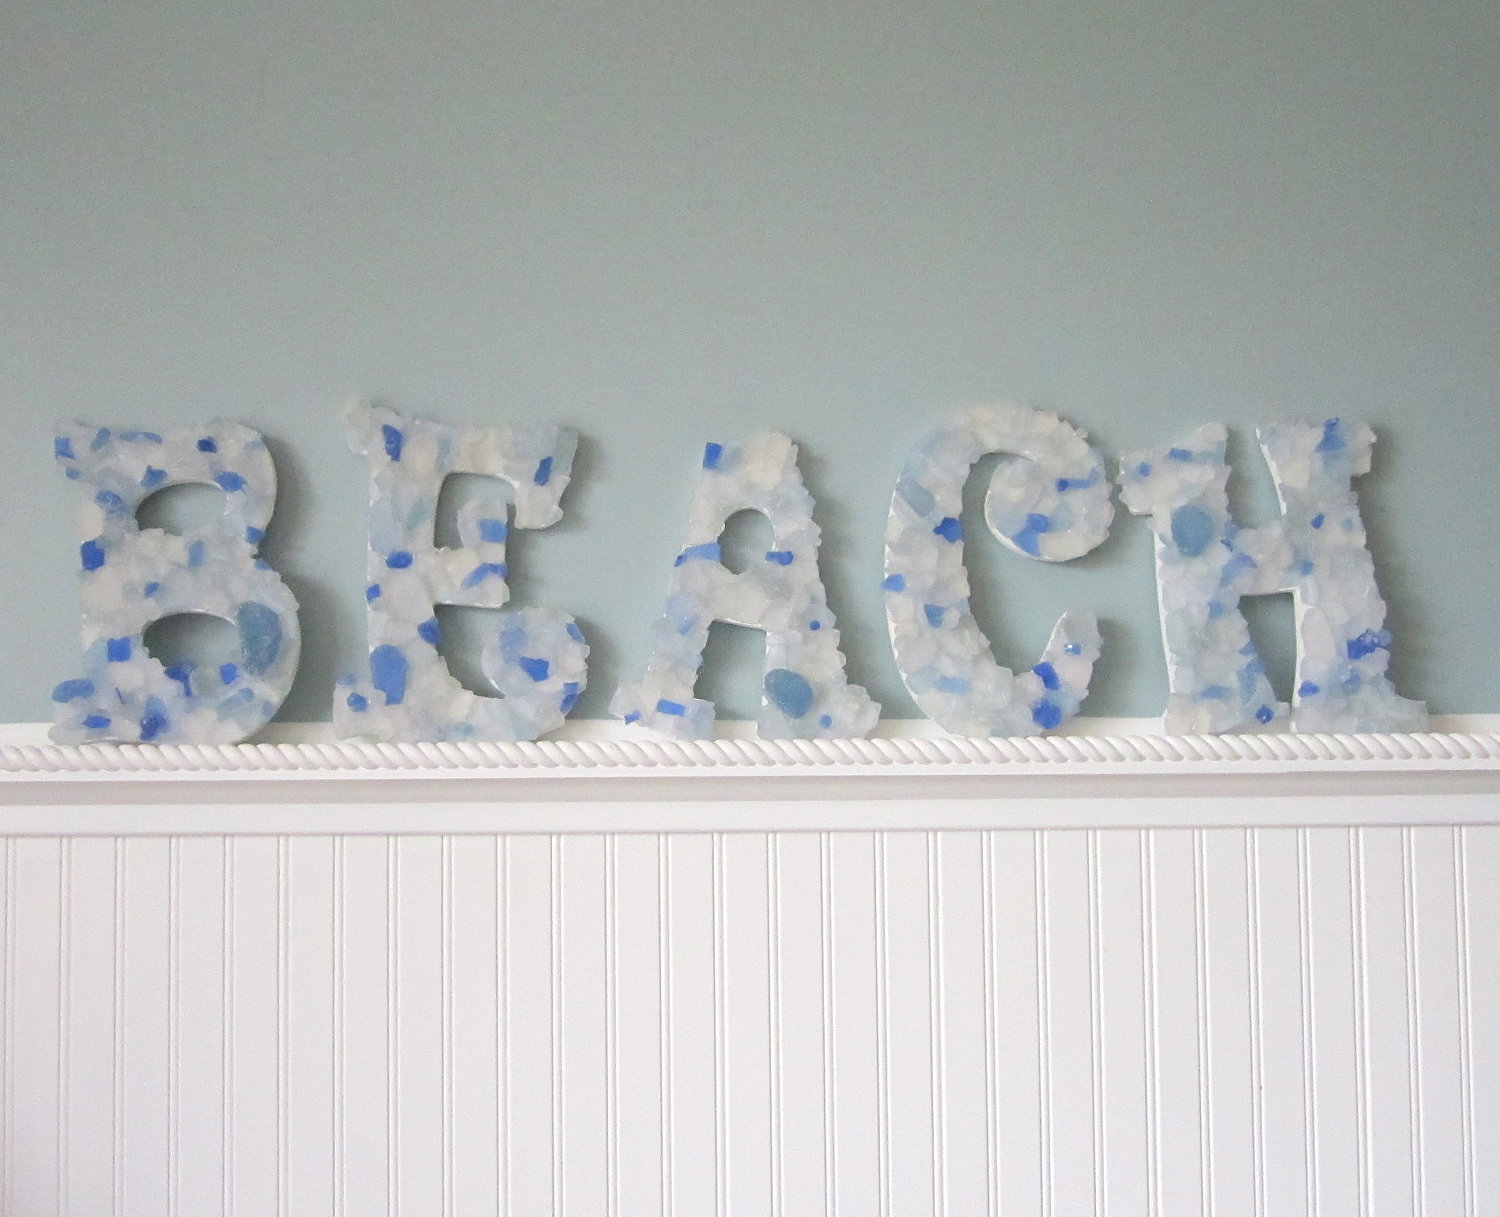 Glass Letters For Wall Beach Wall Letters  Nautical Decor Sea Glass  Decorative Letters